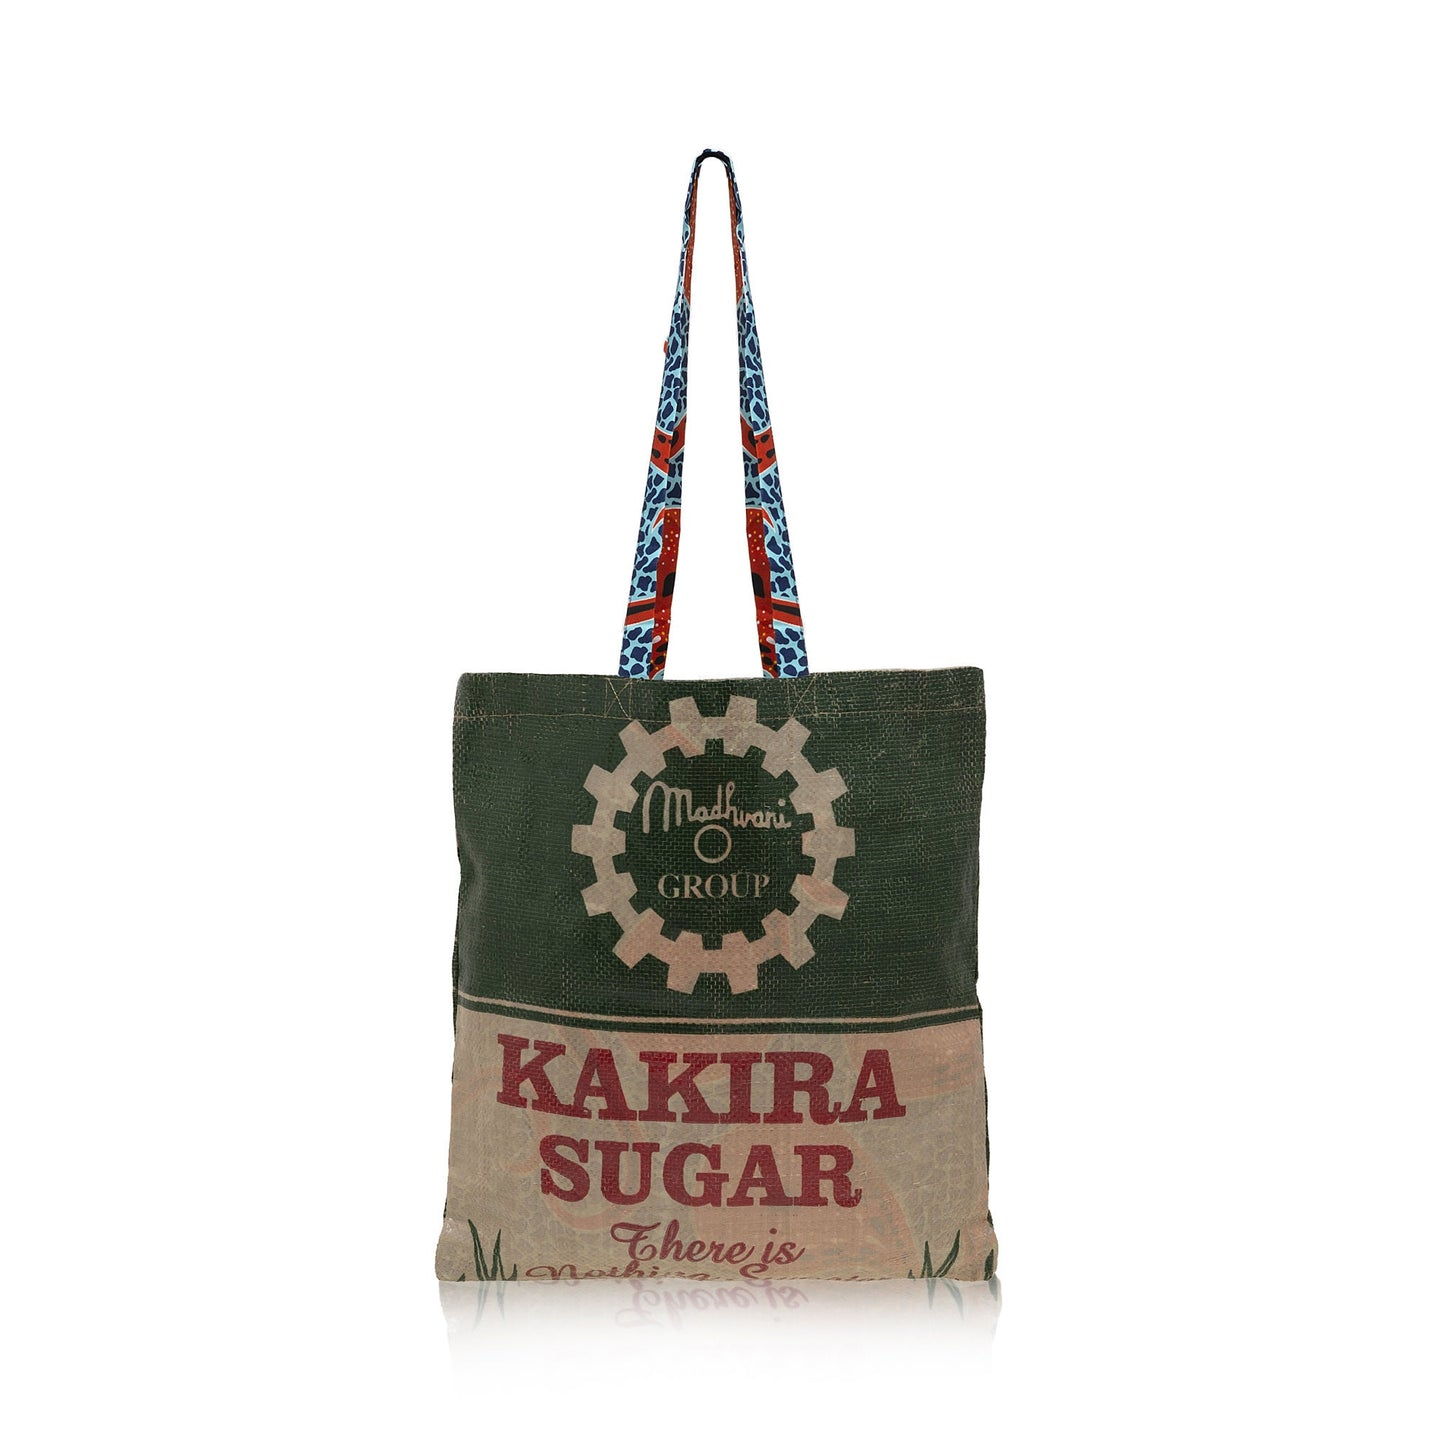 Recycled Tote Bag / Blue Brown Wax Print Lining / RECYCLED SACK BAG / Made in Uganda / Upcyled / Limited Edition